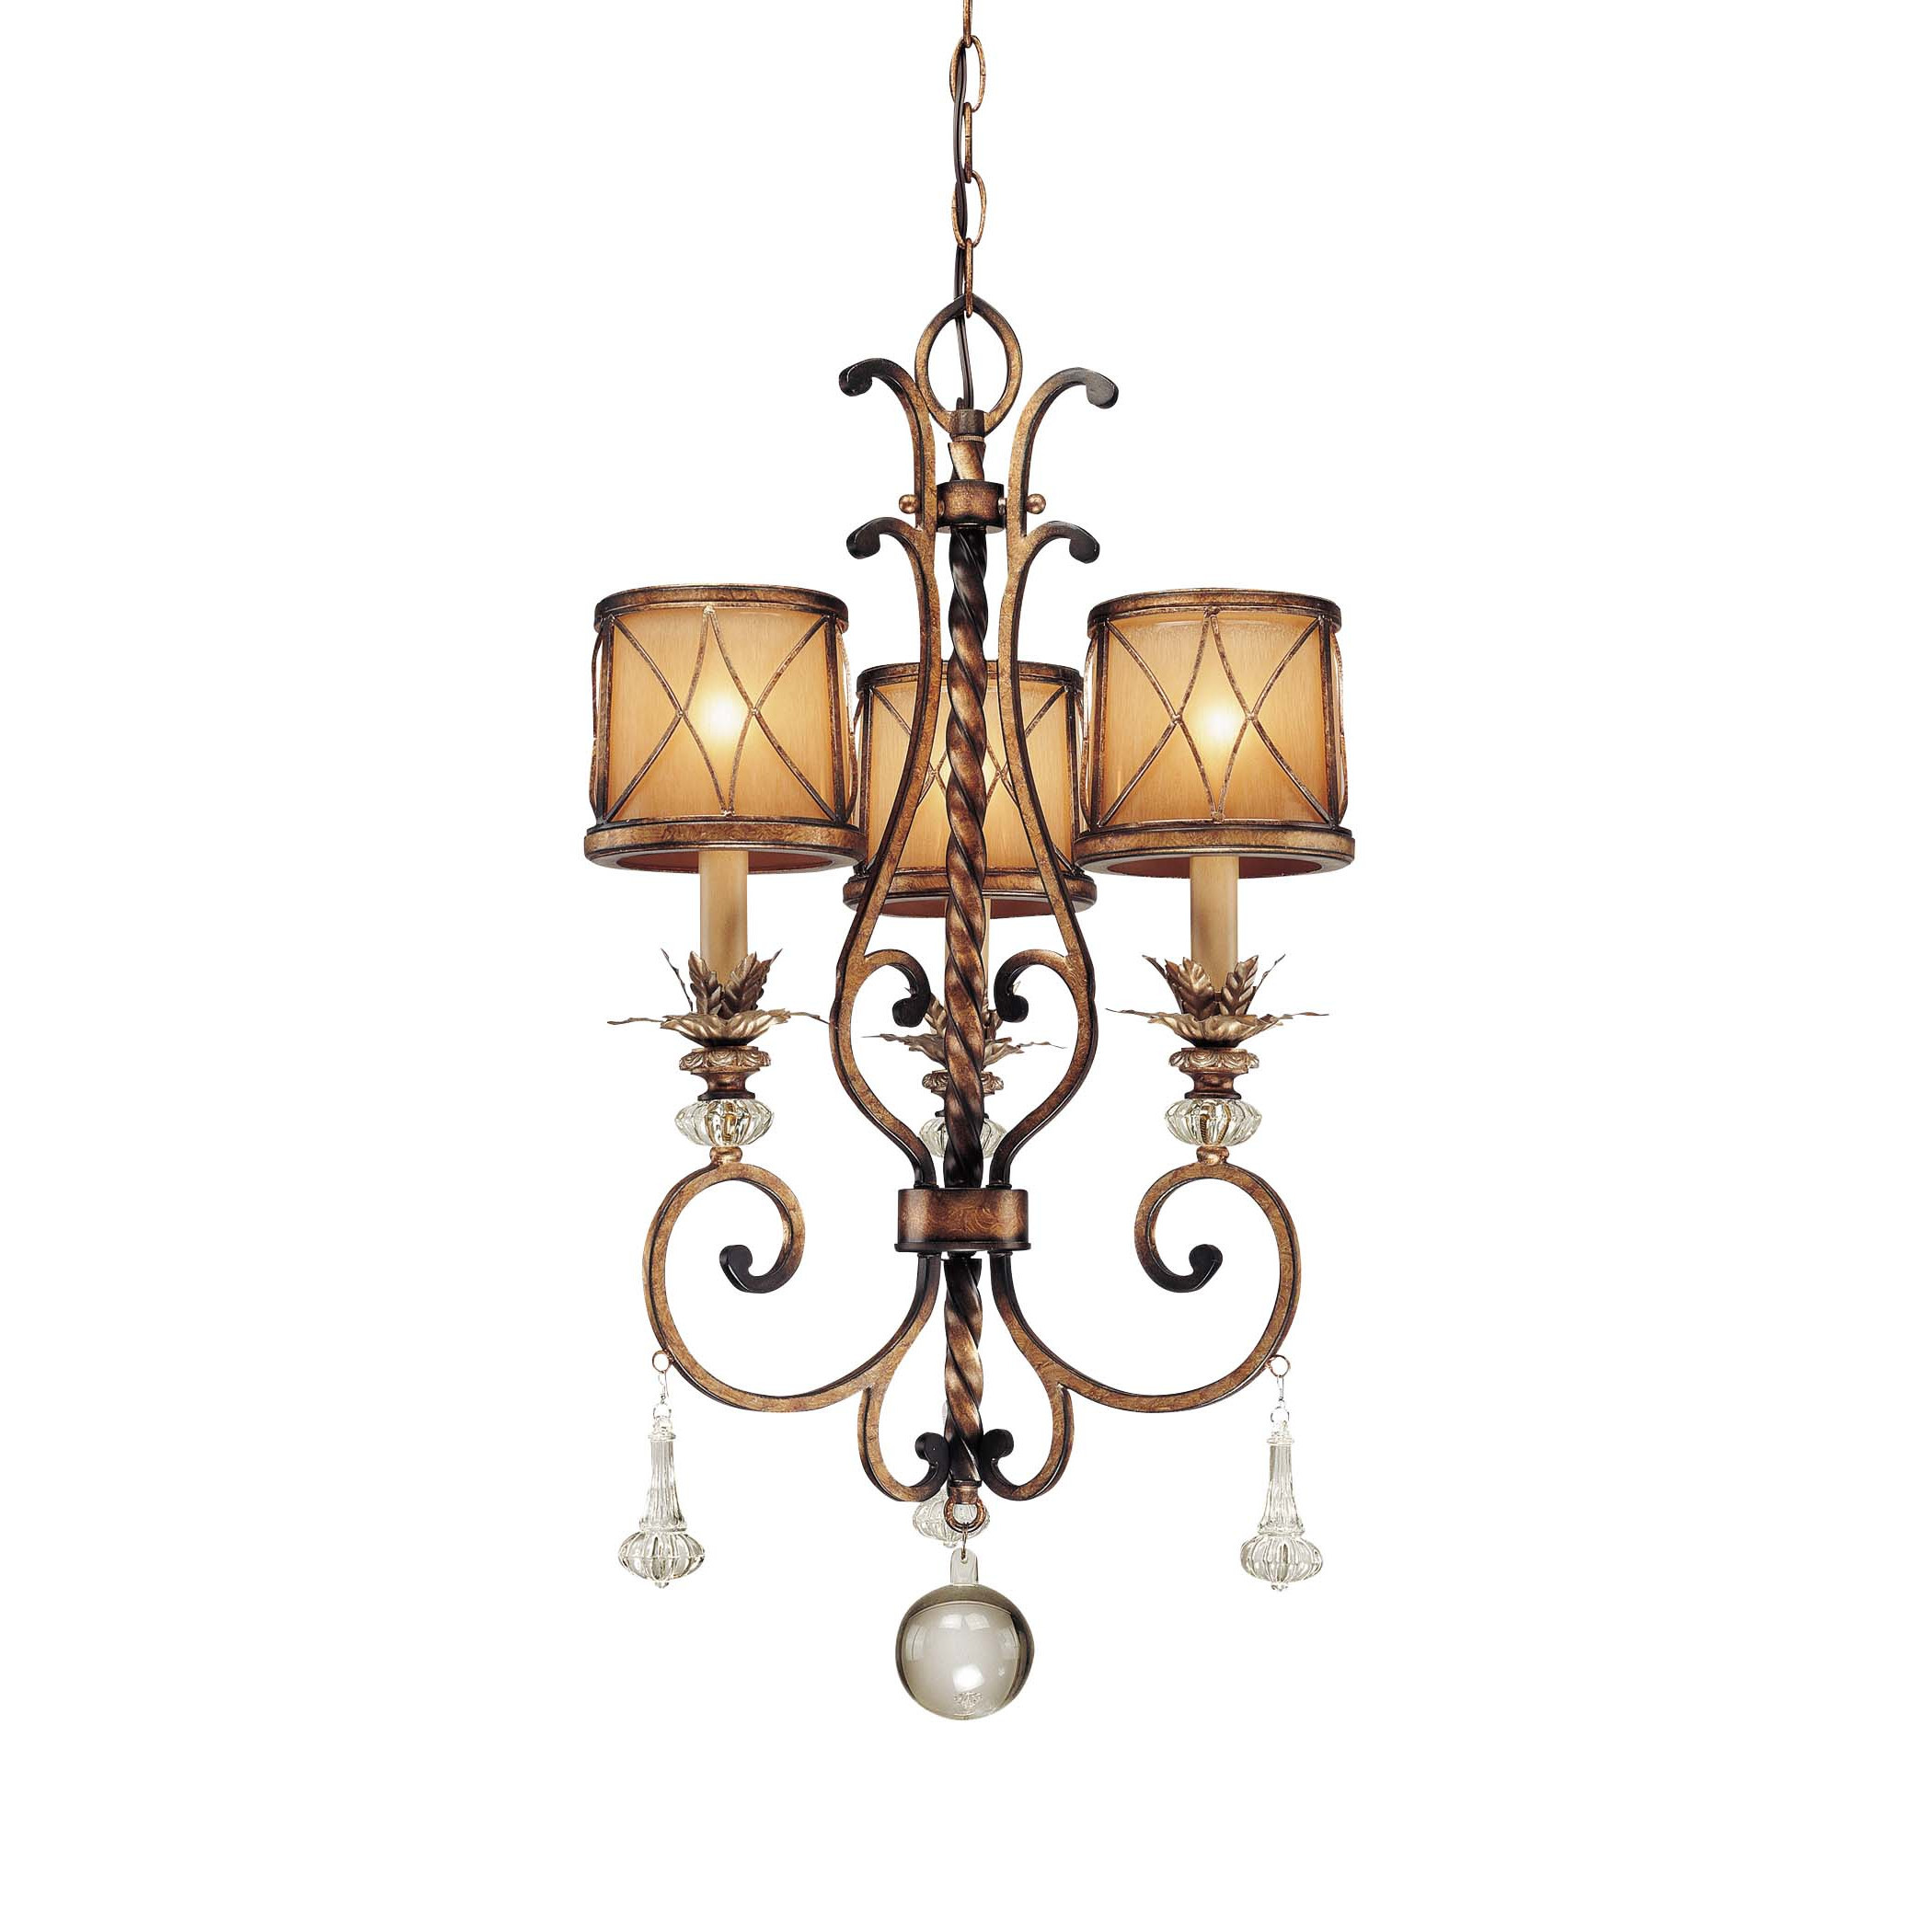 Best ideas about Minka Lavery Lighting . Save or Pin Minka Lavery Aston Court 3 Light Chandelier & Reviews Now.